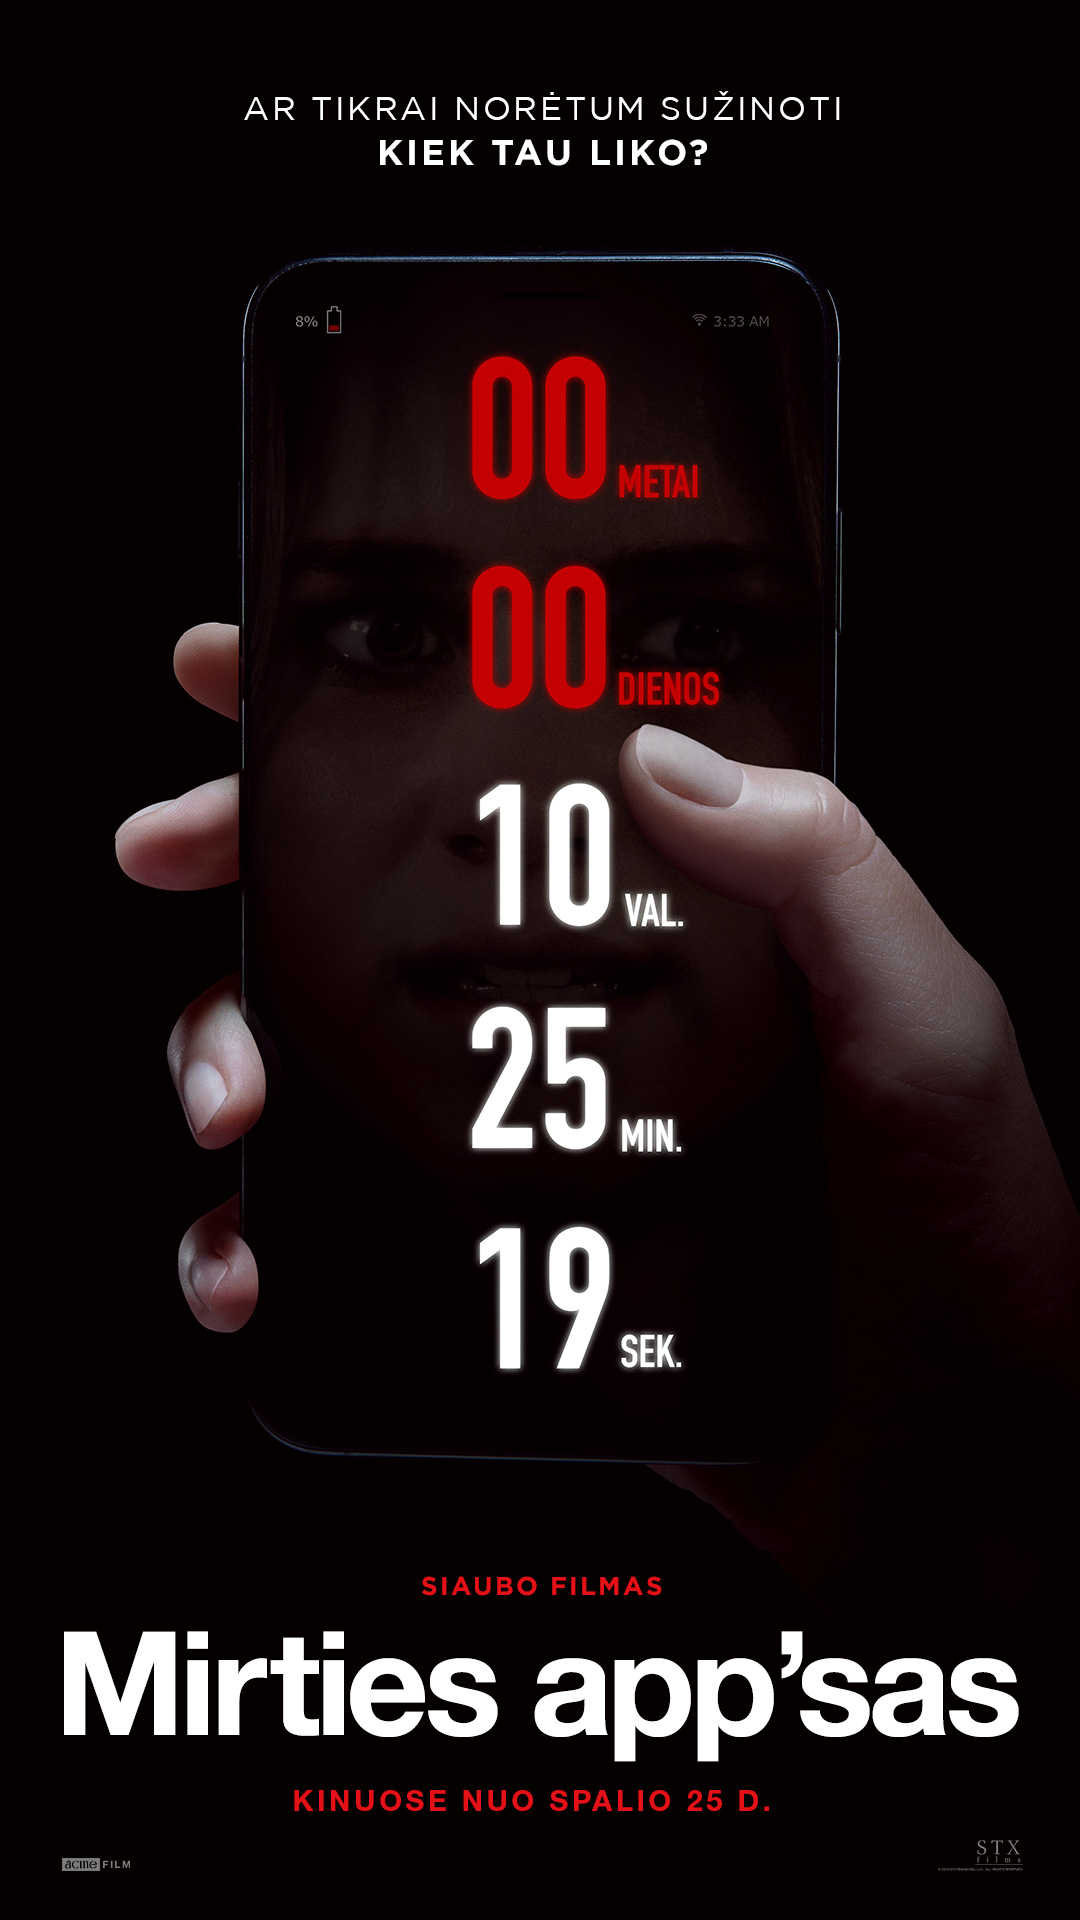 MIRTIES APP'SAS (Countdown)